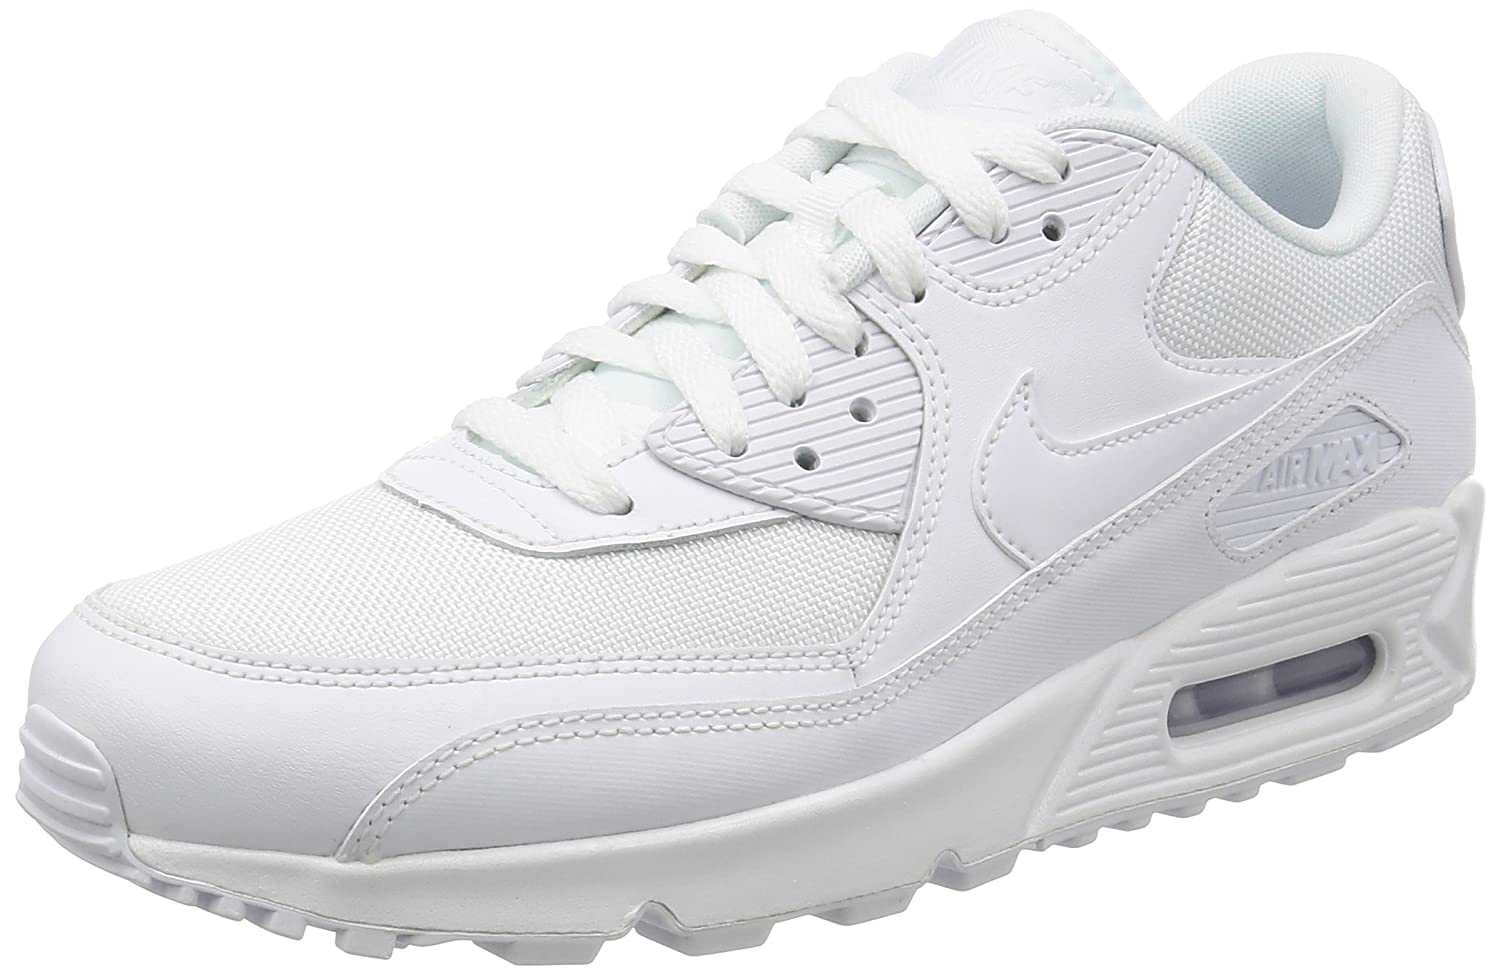 promo code 824b6 6b07e Nike Men s Air Max 90 Essential Sneakers  Amazon.co.uk  Shoes   Bags